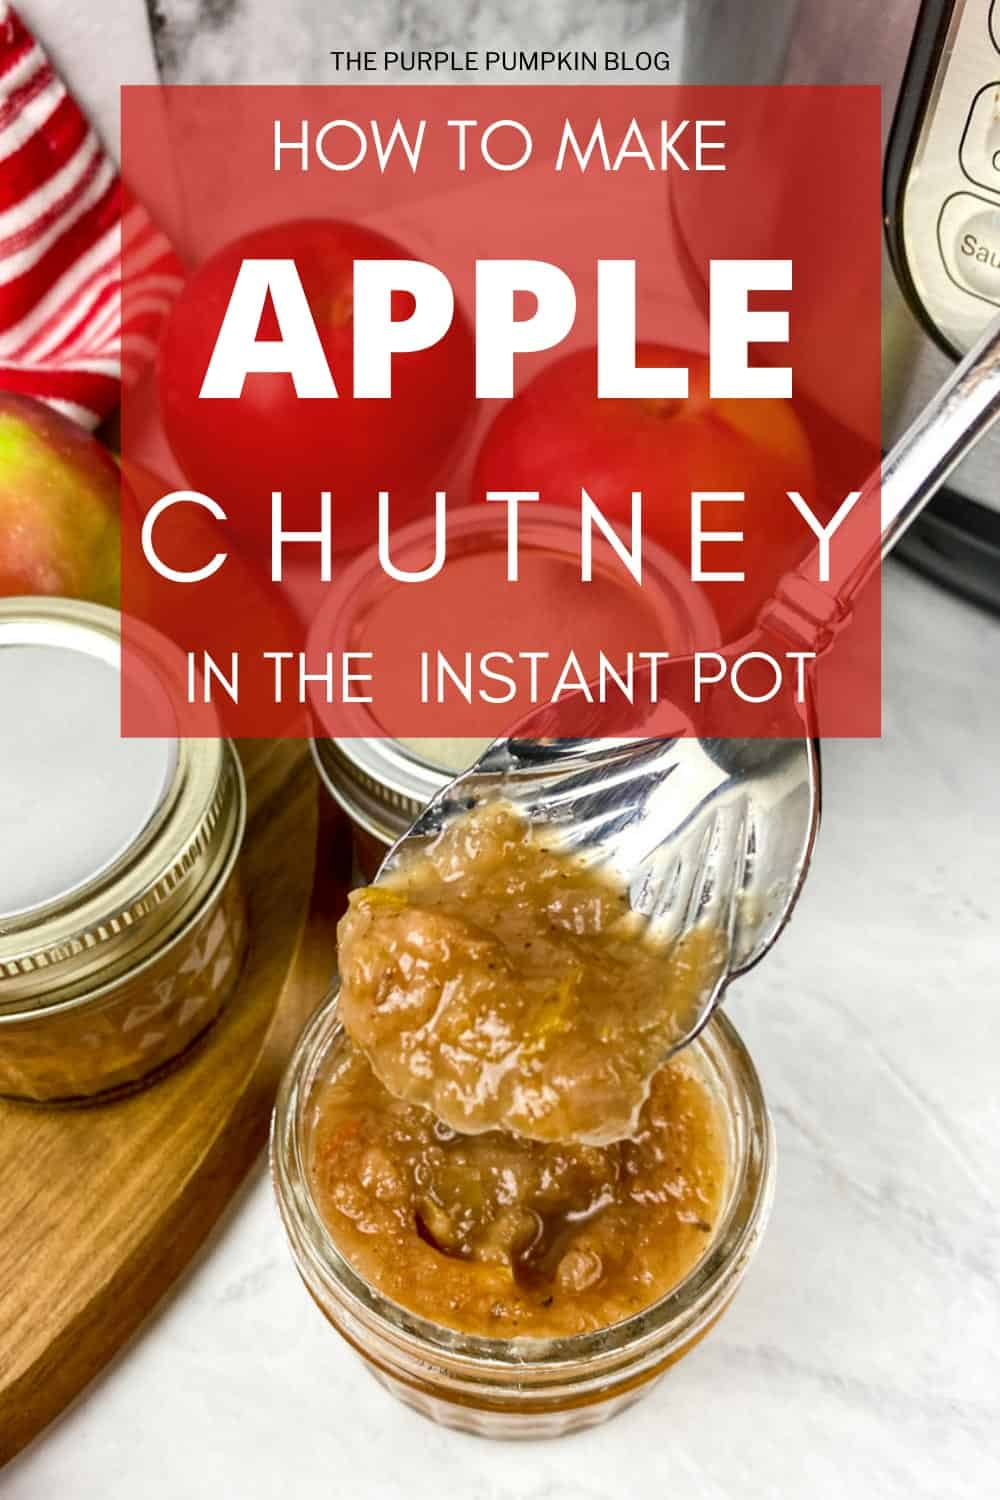 How-To-Make-Apple-Chutney-in-the-Instant-Pot